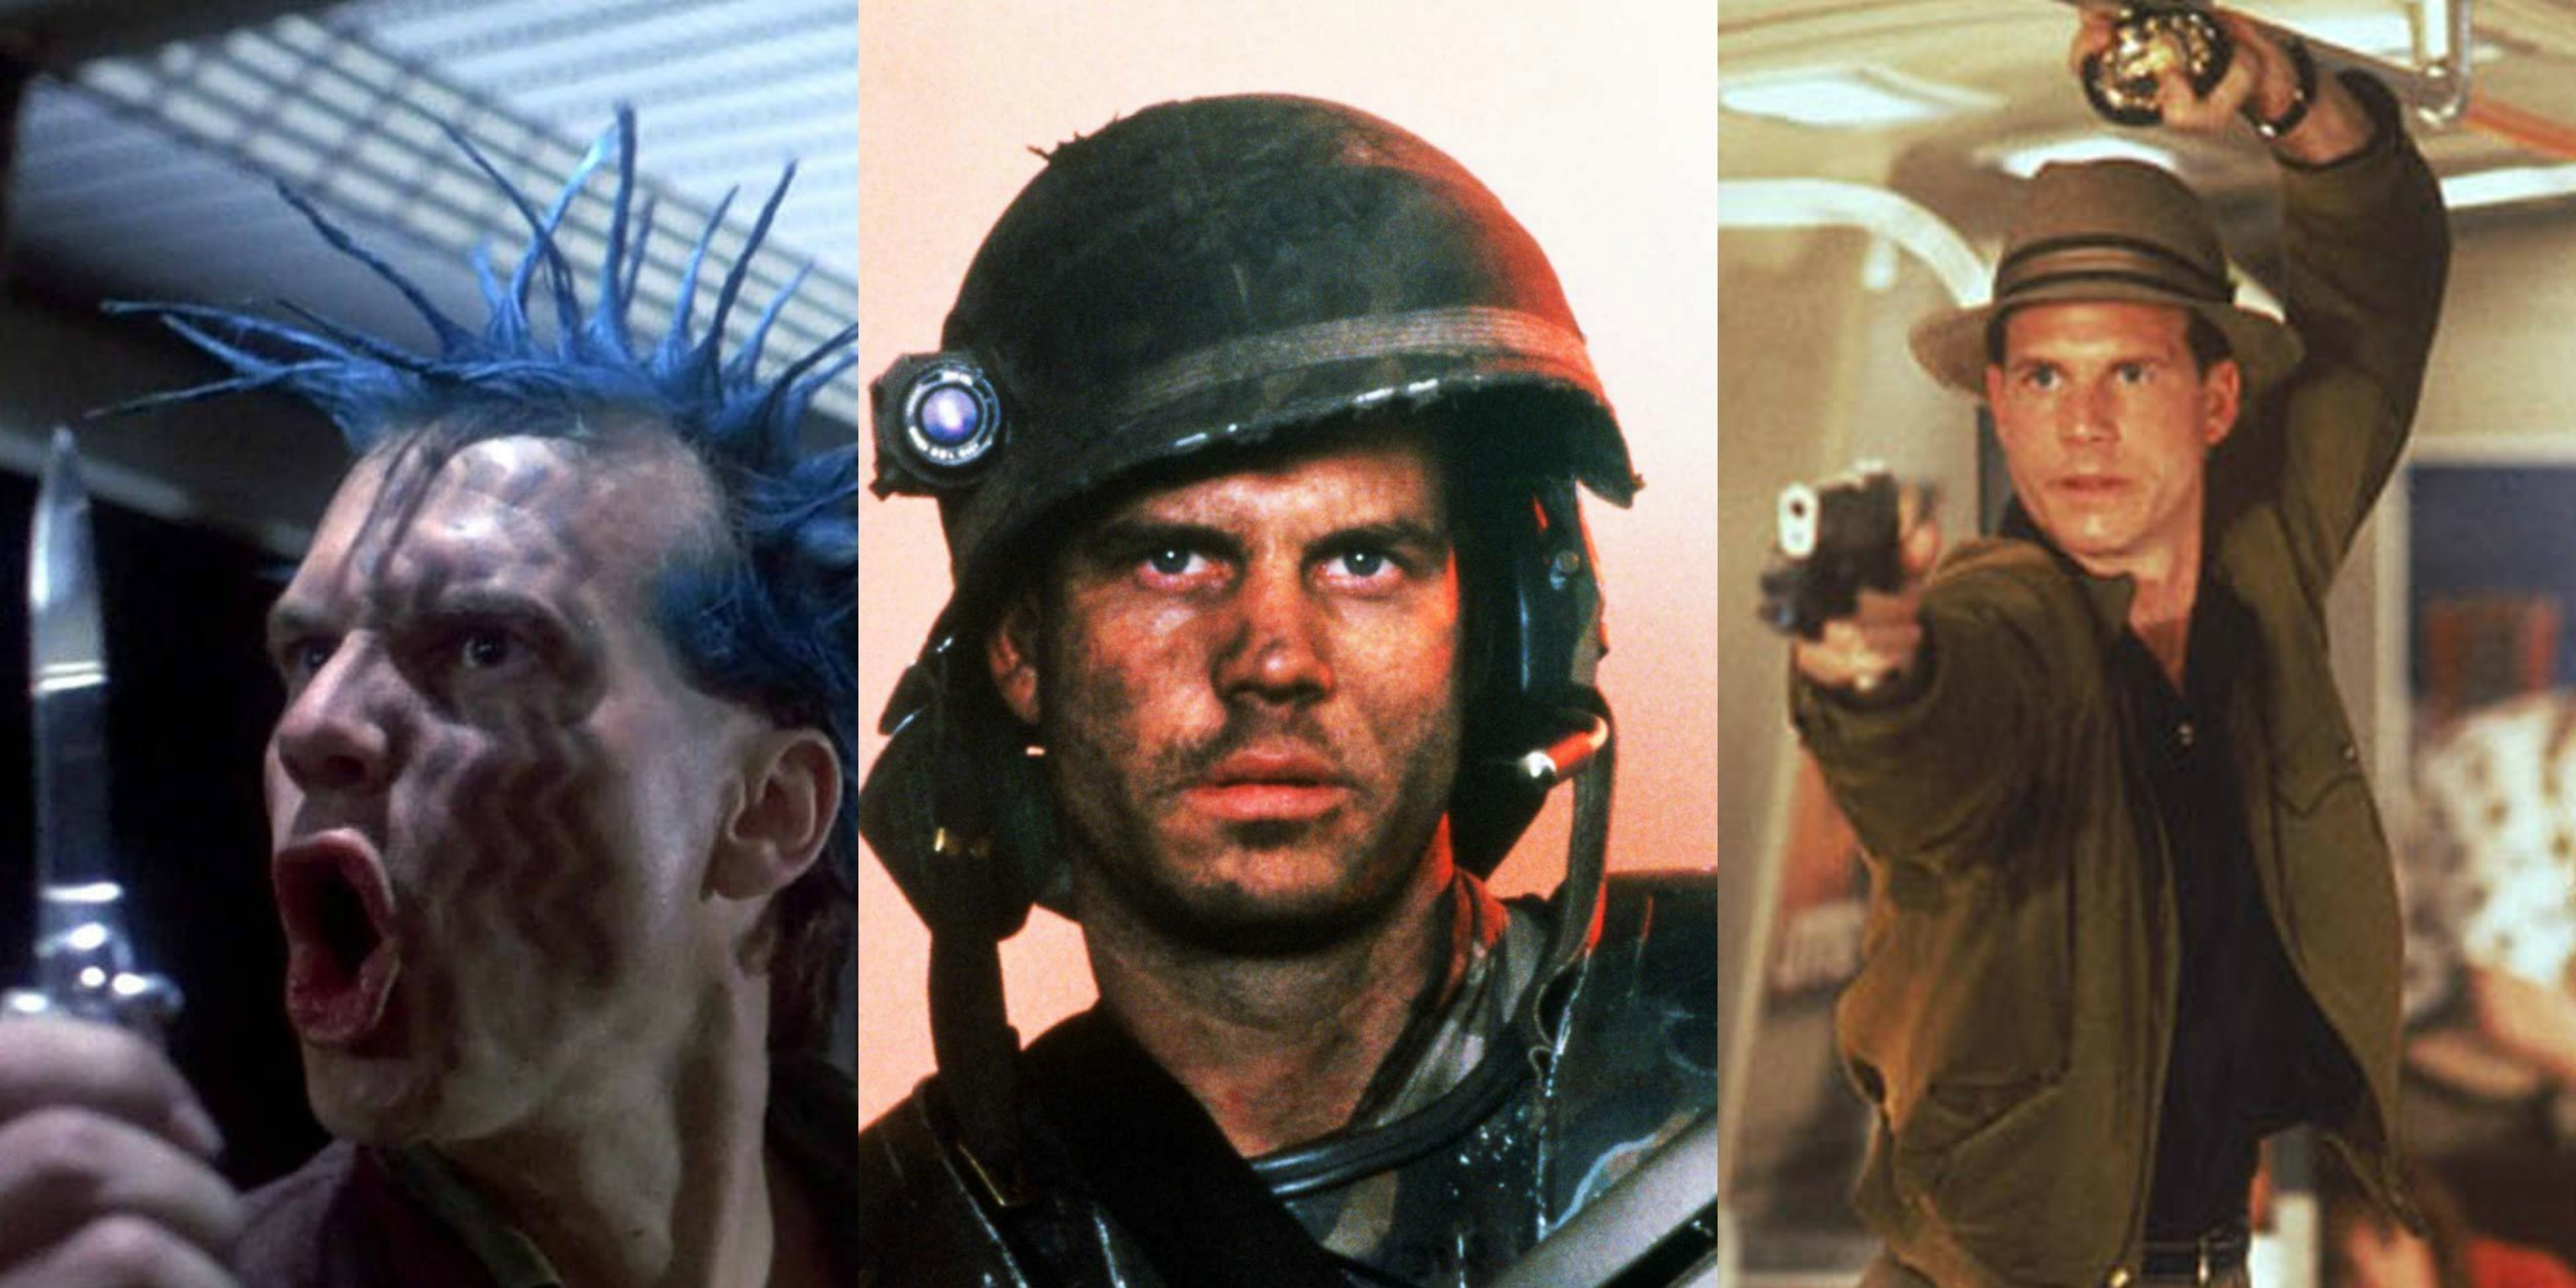 Paxton is the only actor whose characters had been killed by modern sci-fi's greatest monsters: The Terminator, Alien, Predator.